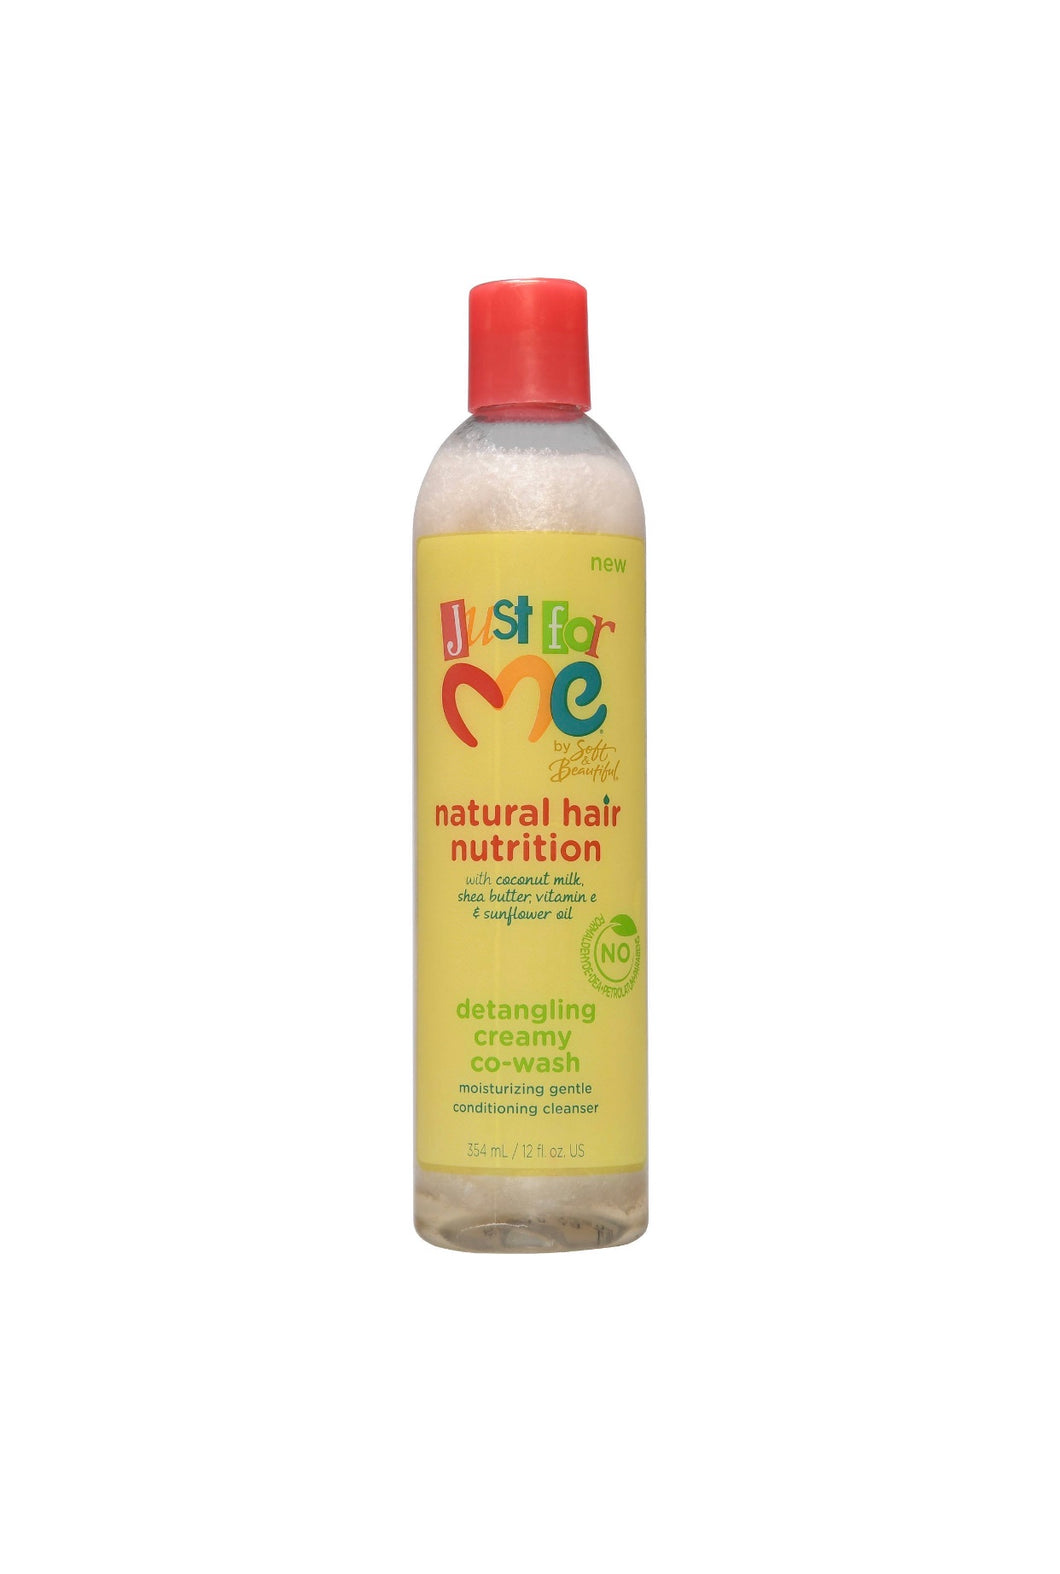 Just For Me Natural Hair Nutrition Detangling Creamy Co-Wash